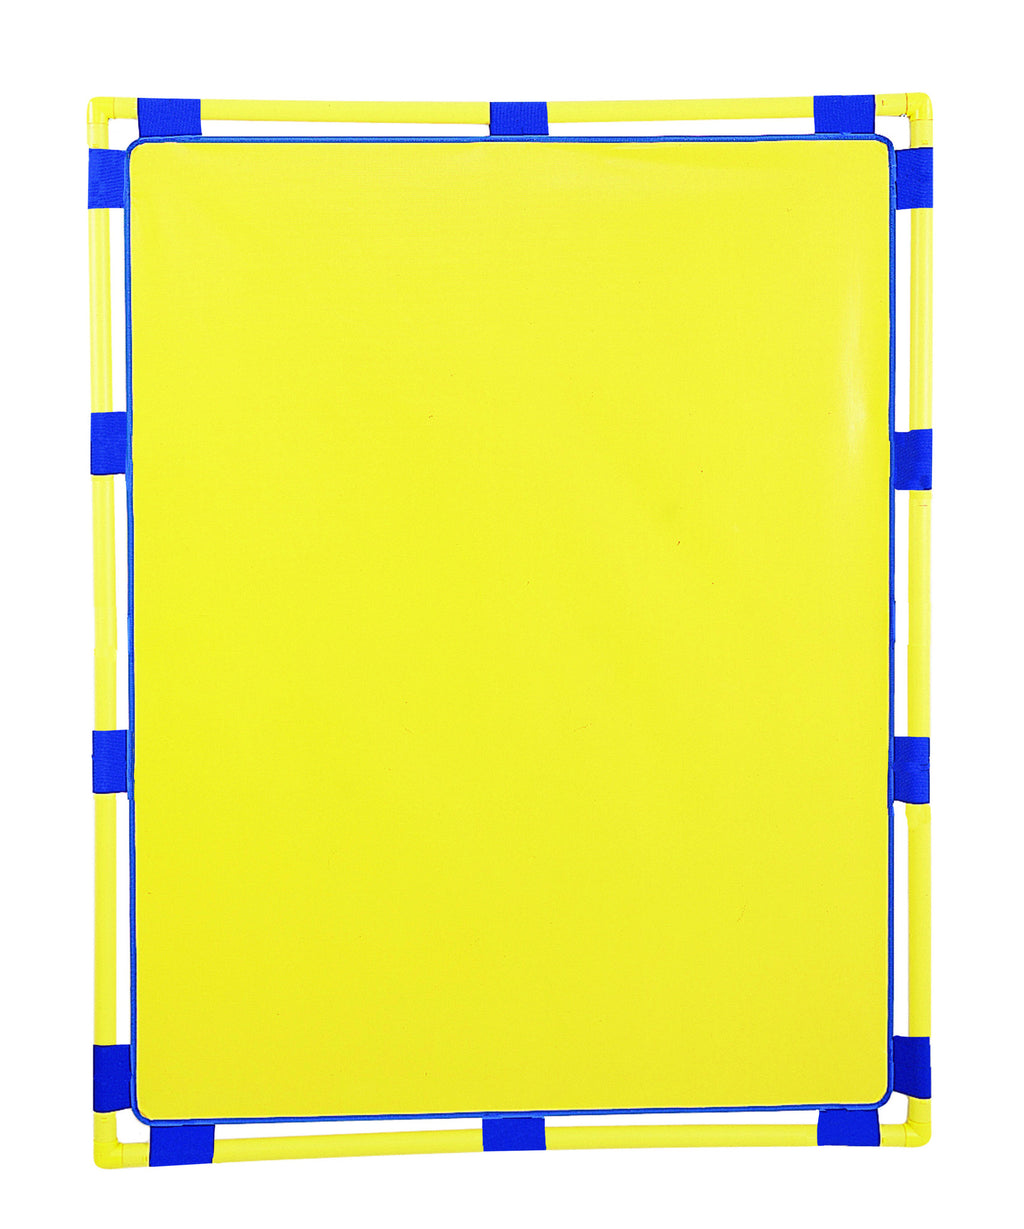 BIG SCREEN YELLOW PLAYPANEL